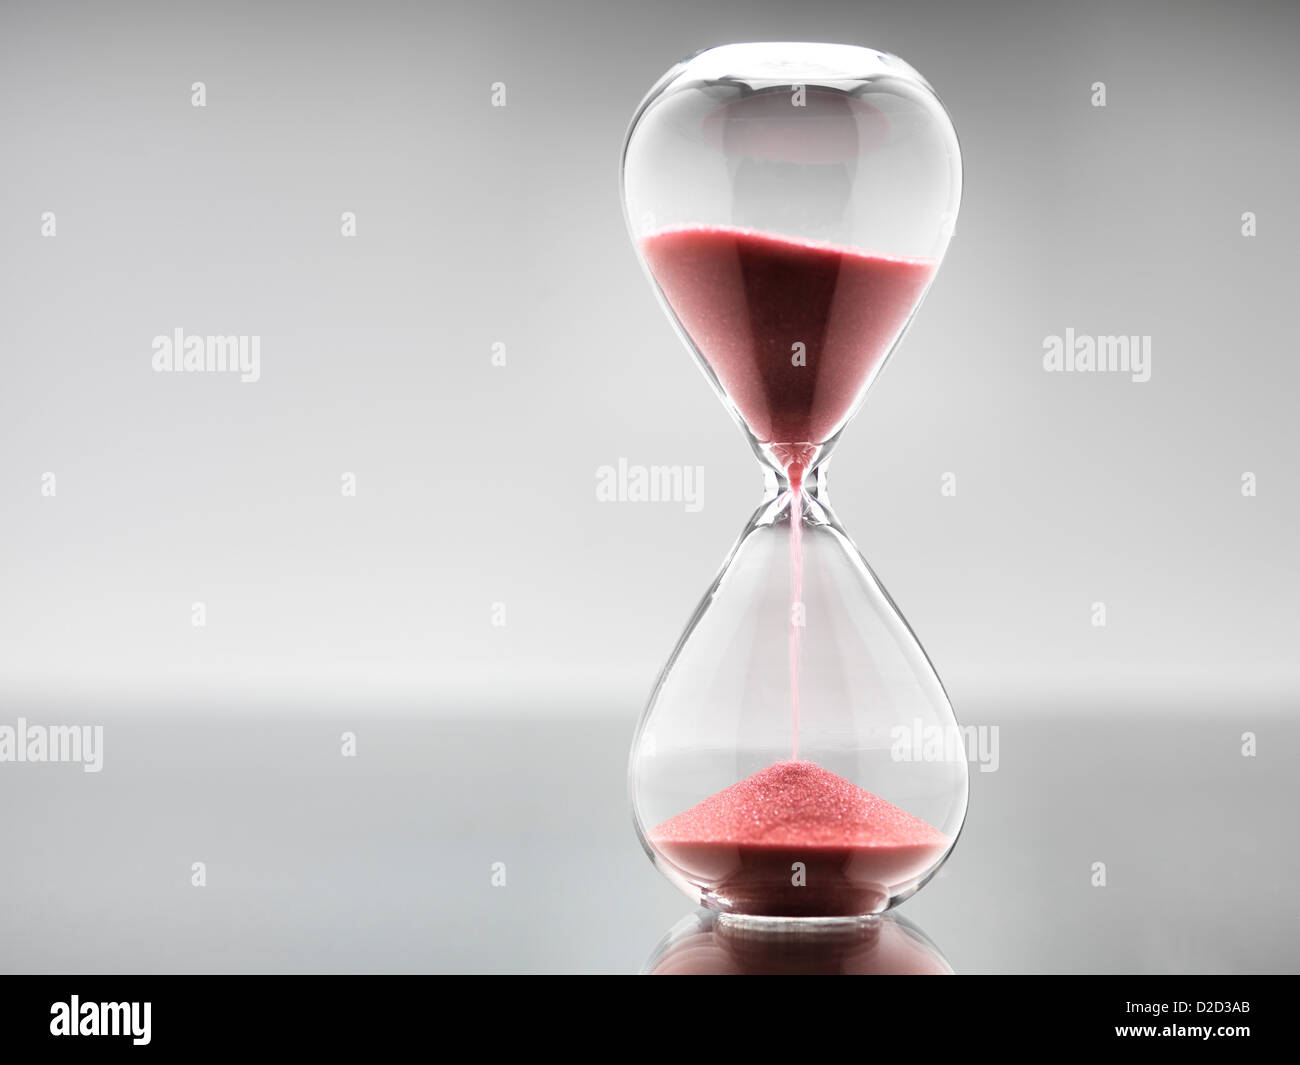 Hour glass - Stock Image